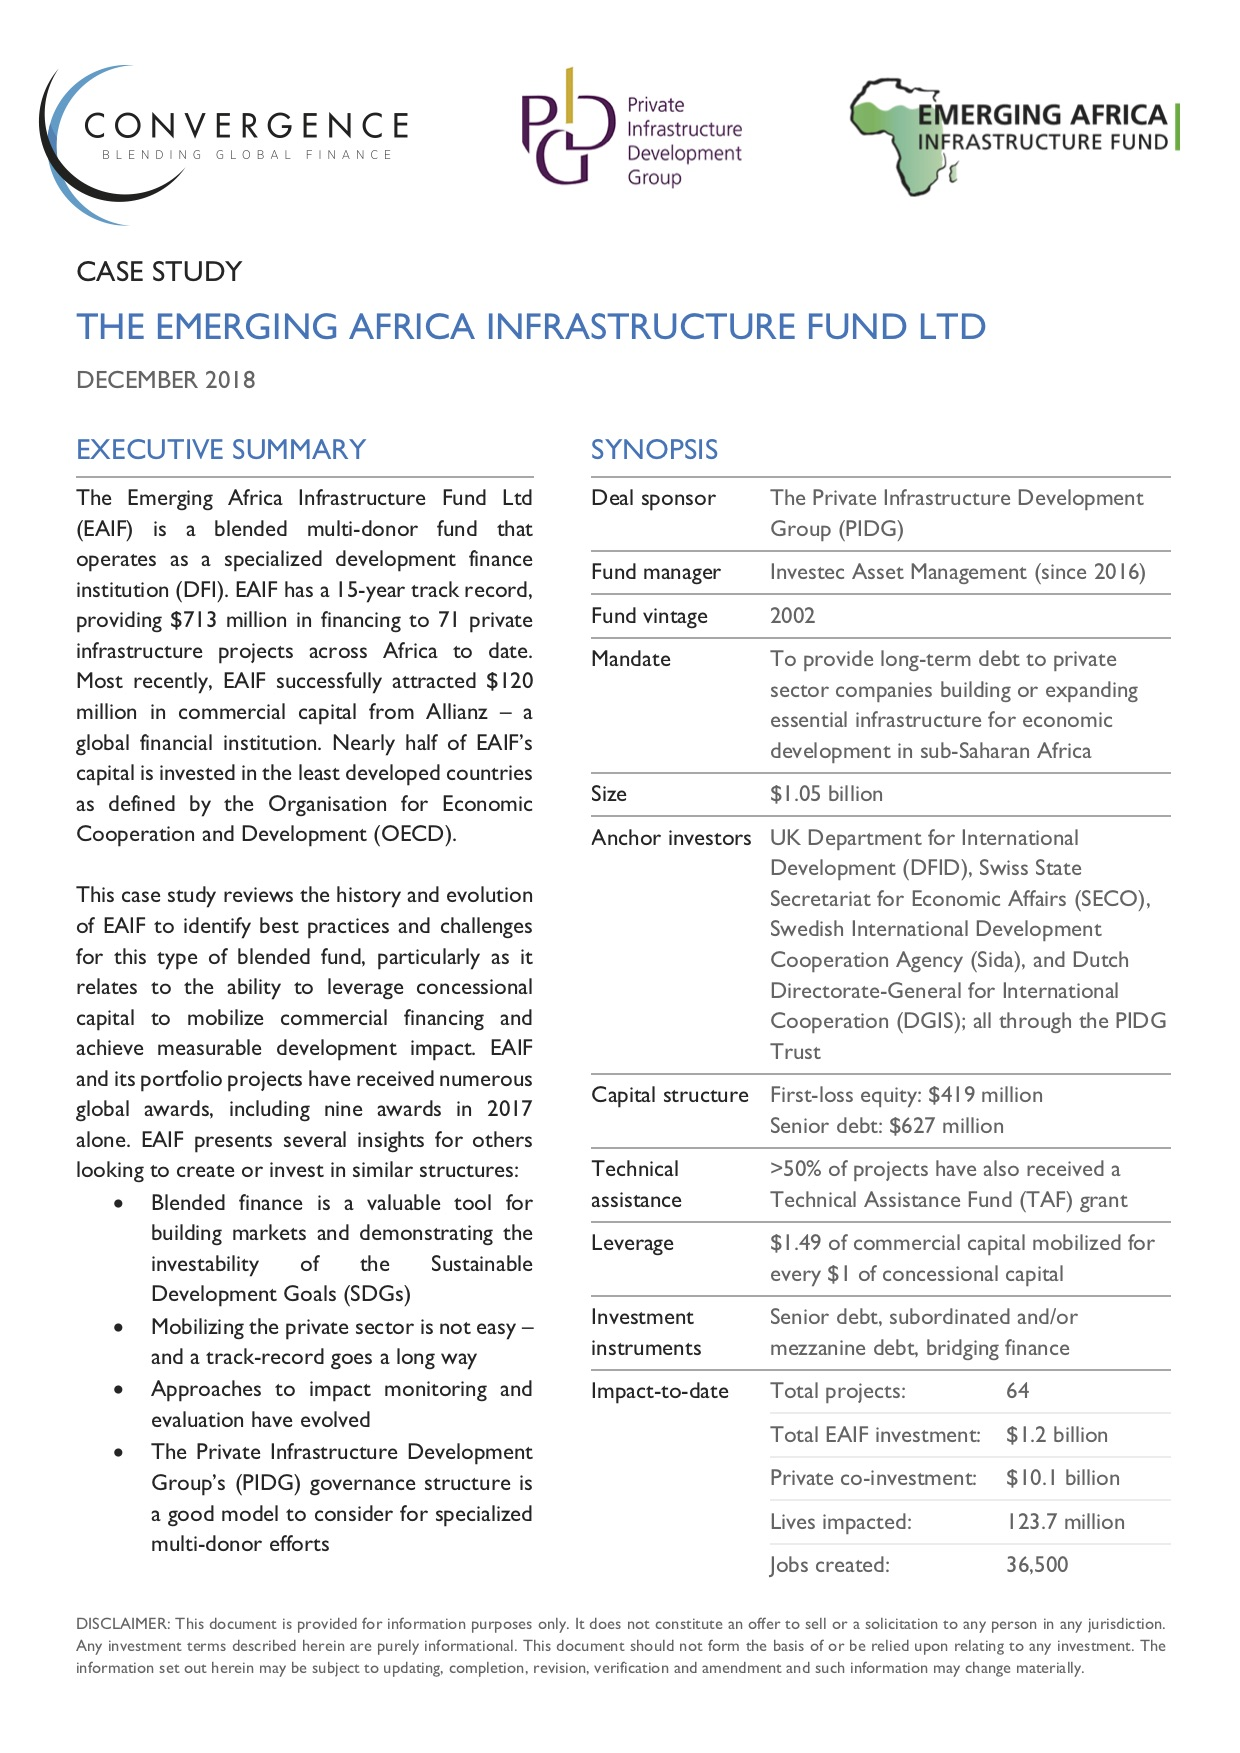 Emerging Africa Infrastructure Fund Case Study